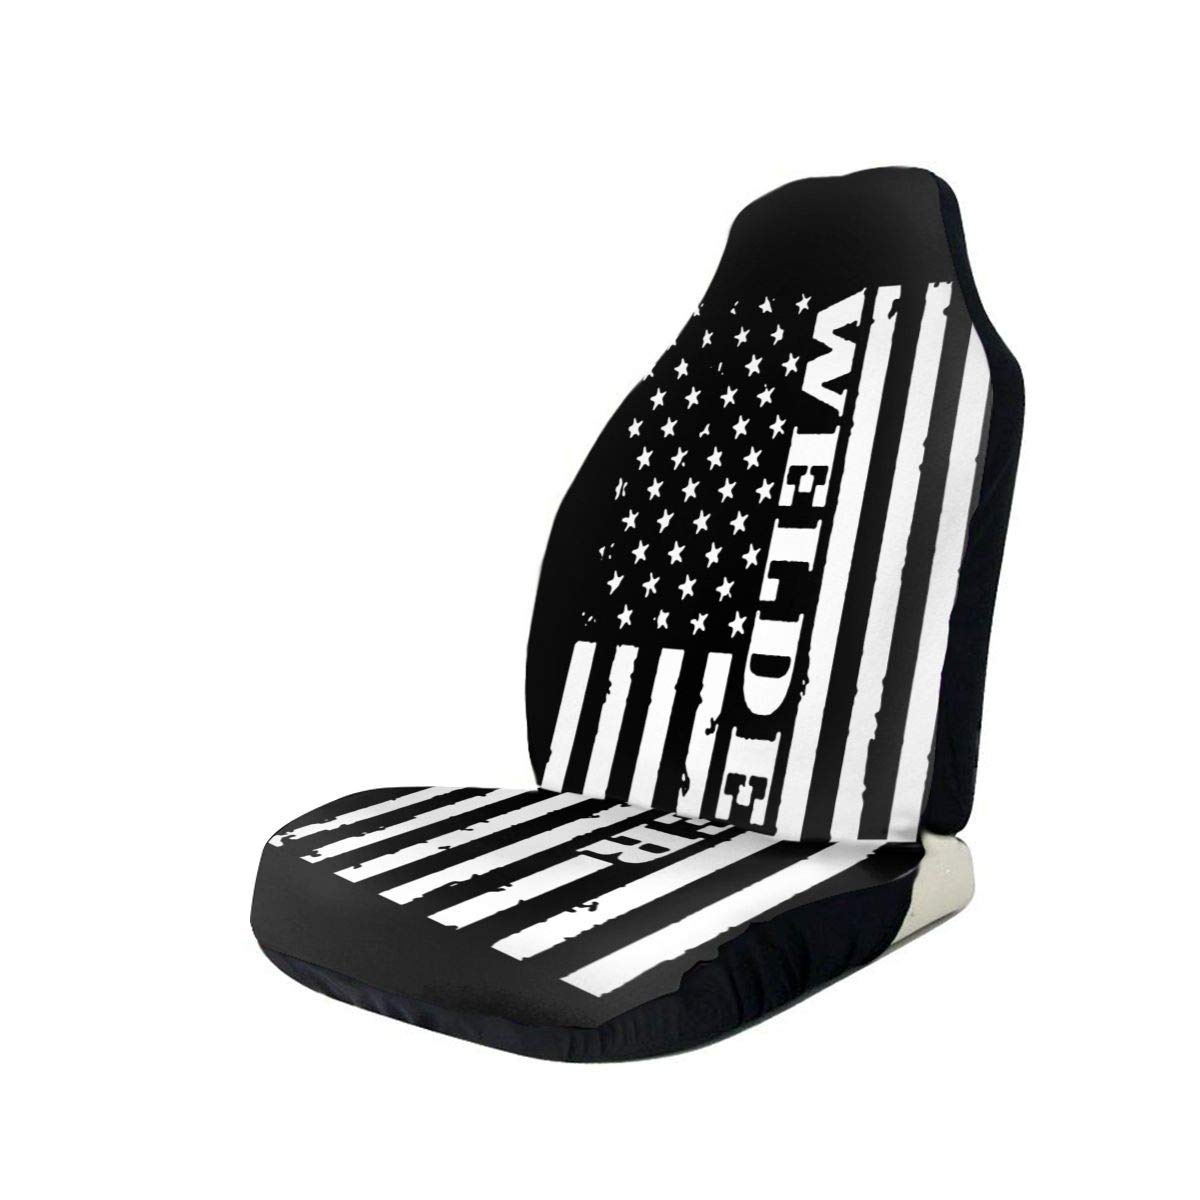 American Welder - Proud Cheap super special price Welding Philadelphia Mall Car Covers for Vehicles Seat Uni